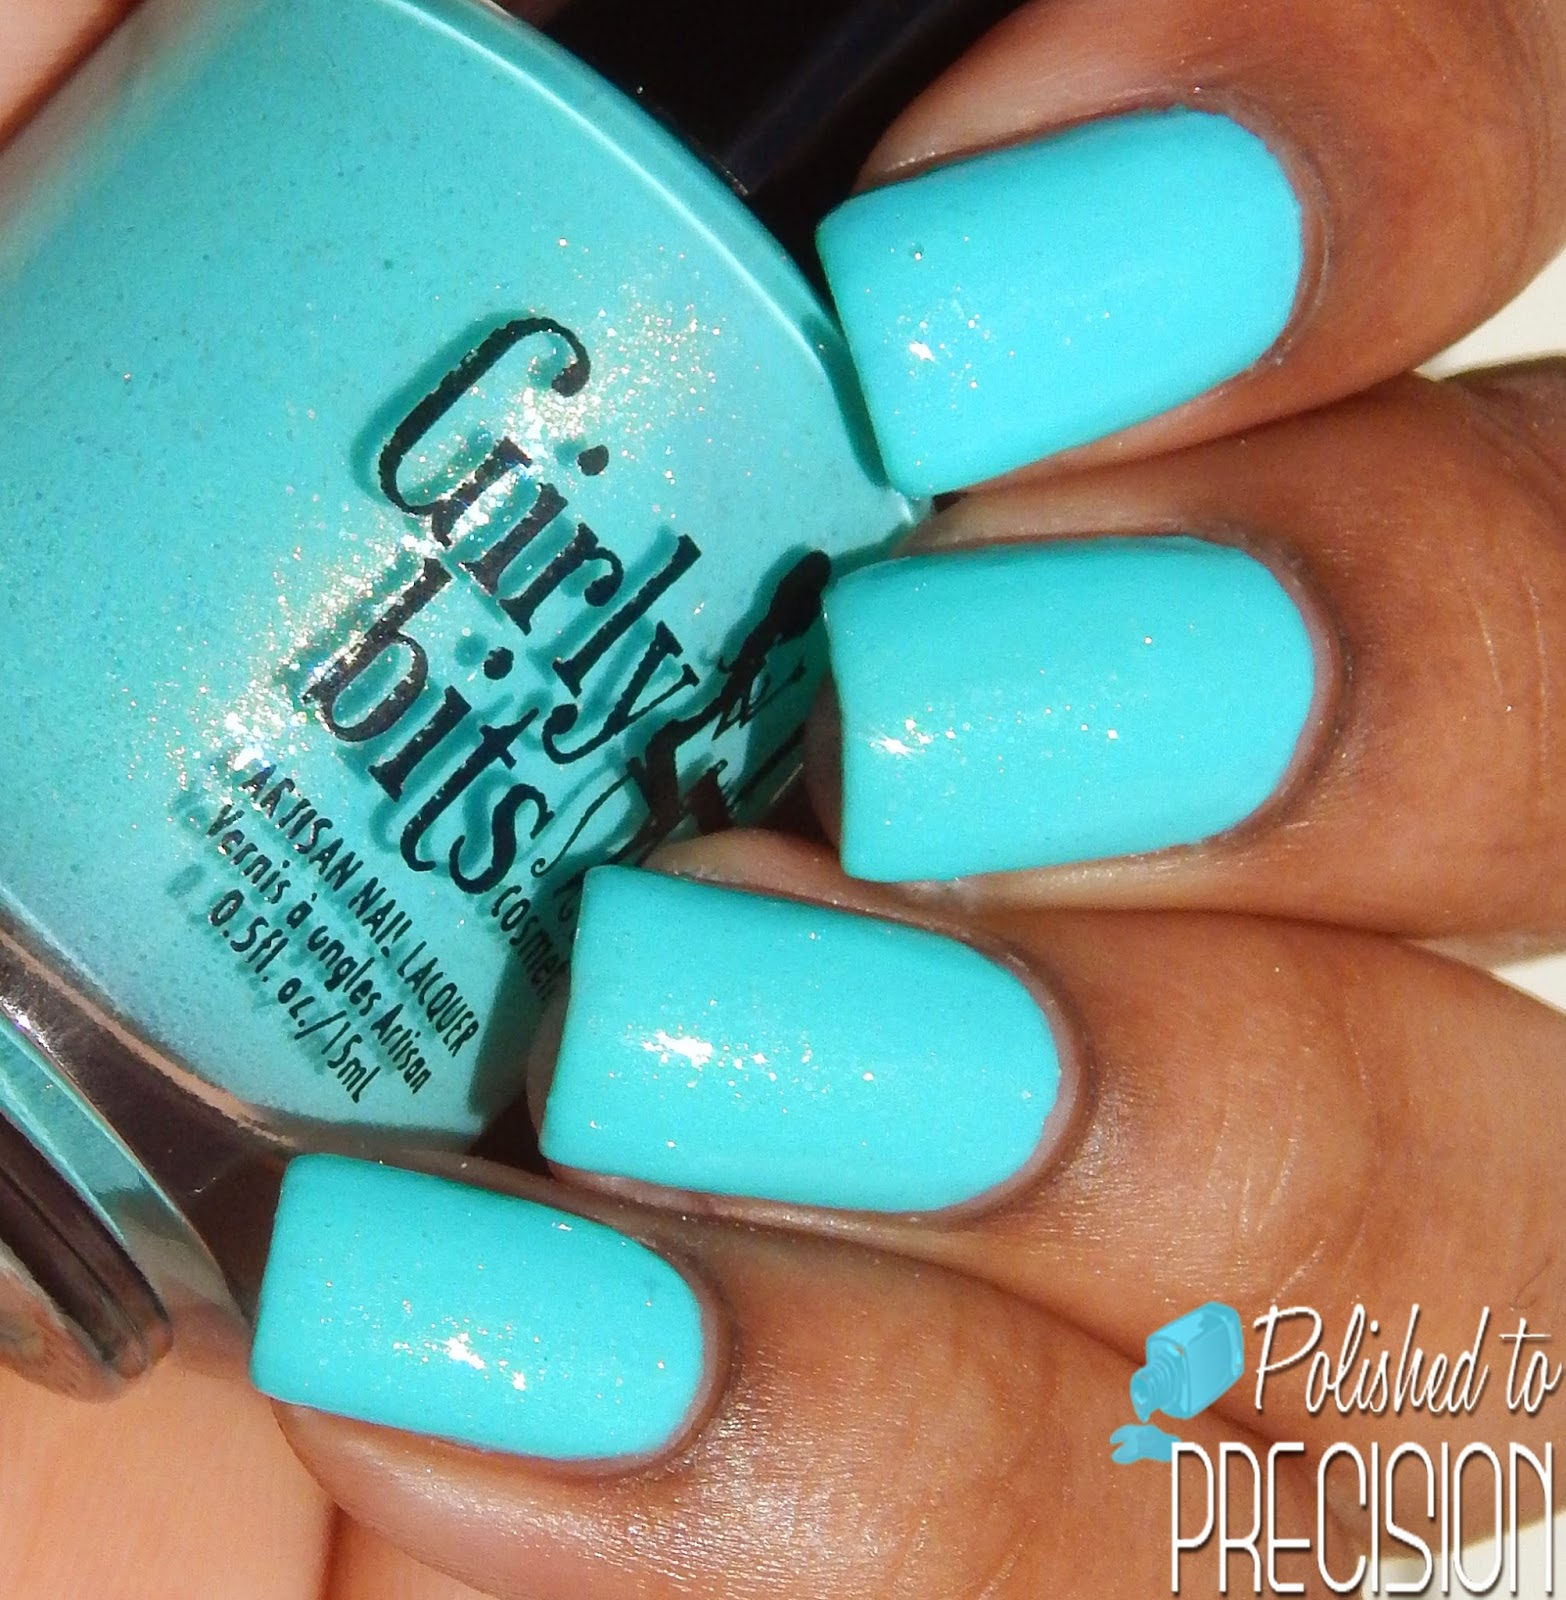 Girly Bits Mint-al Precision